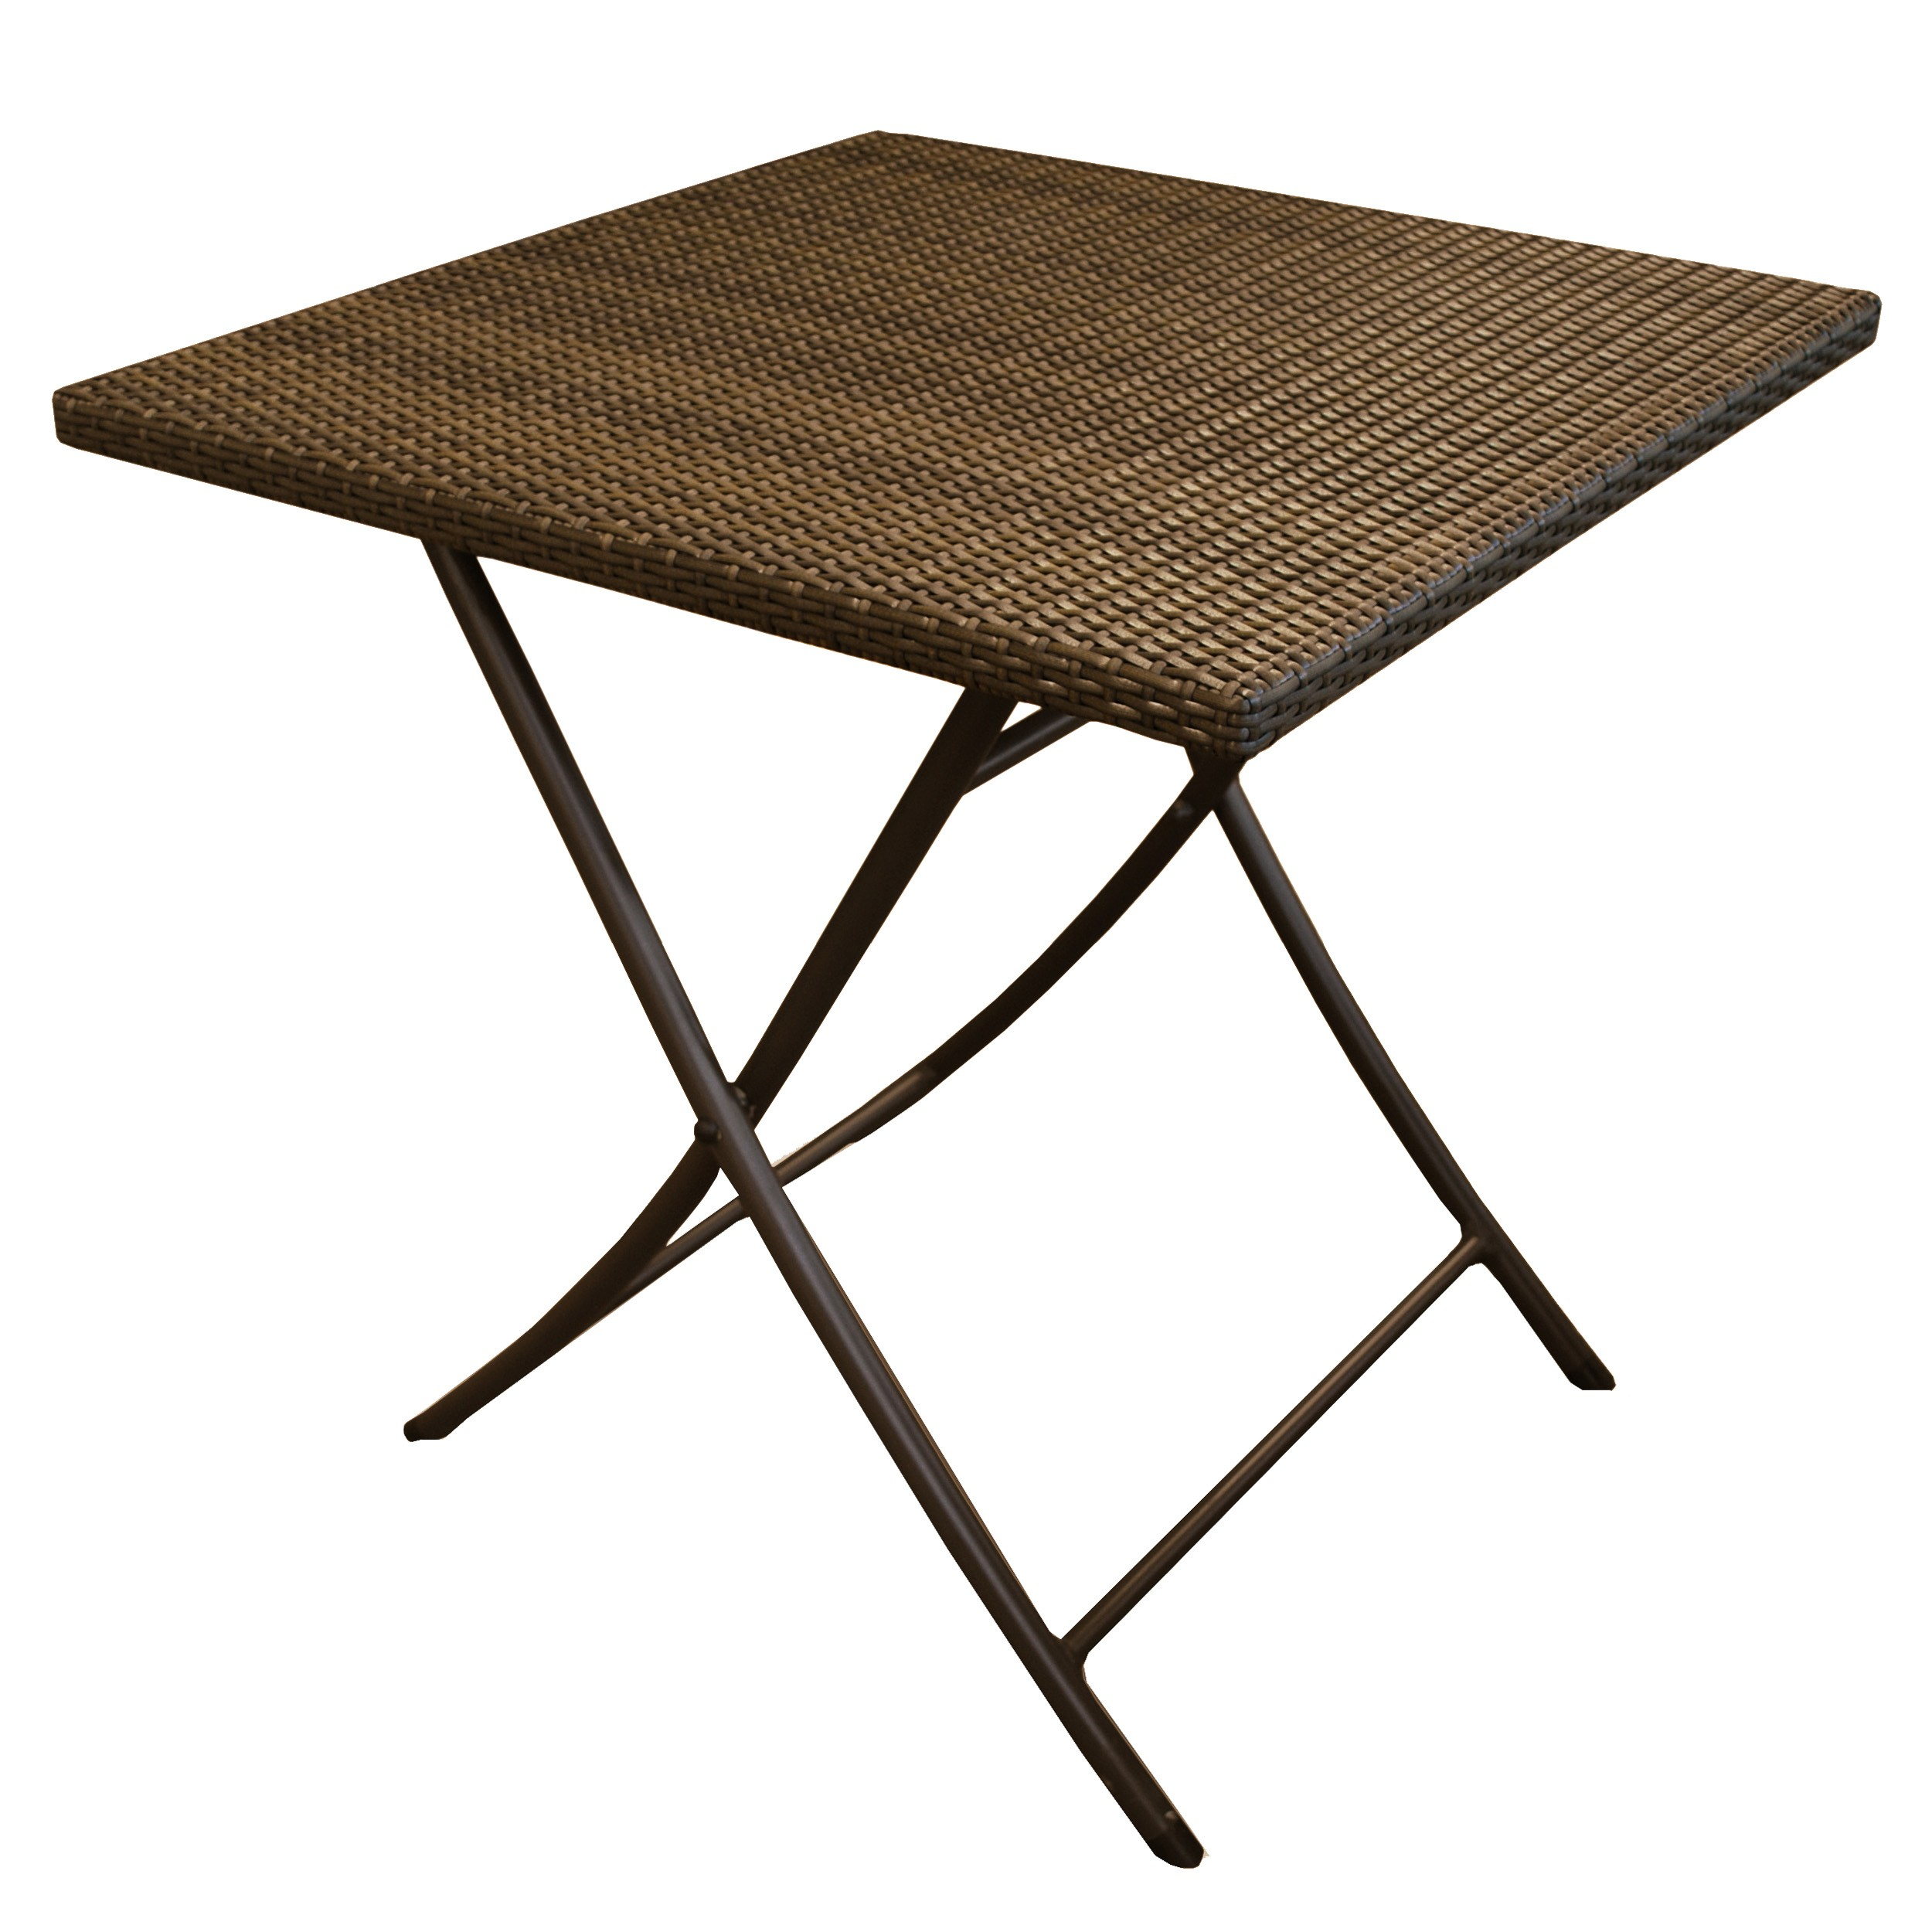 Table Carre Exterieur Table Carre Exterieur Table Basse Exterieur Carre Table